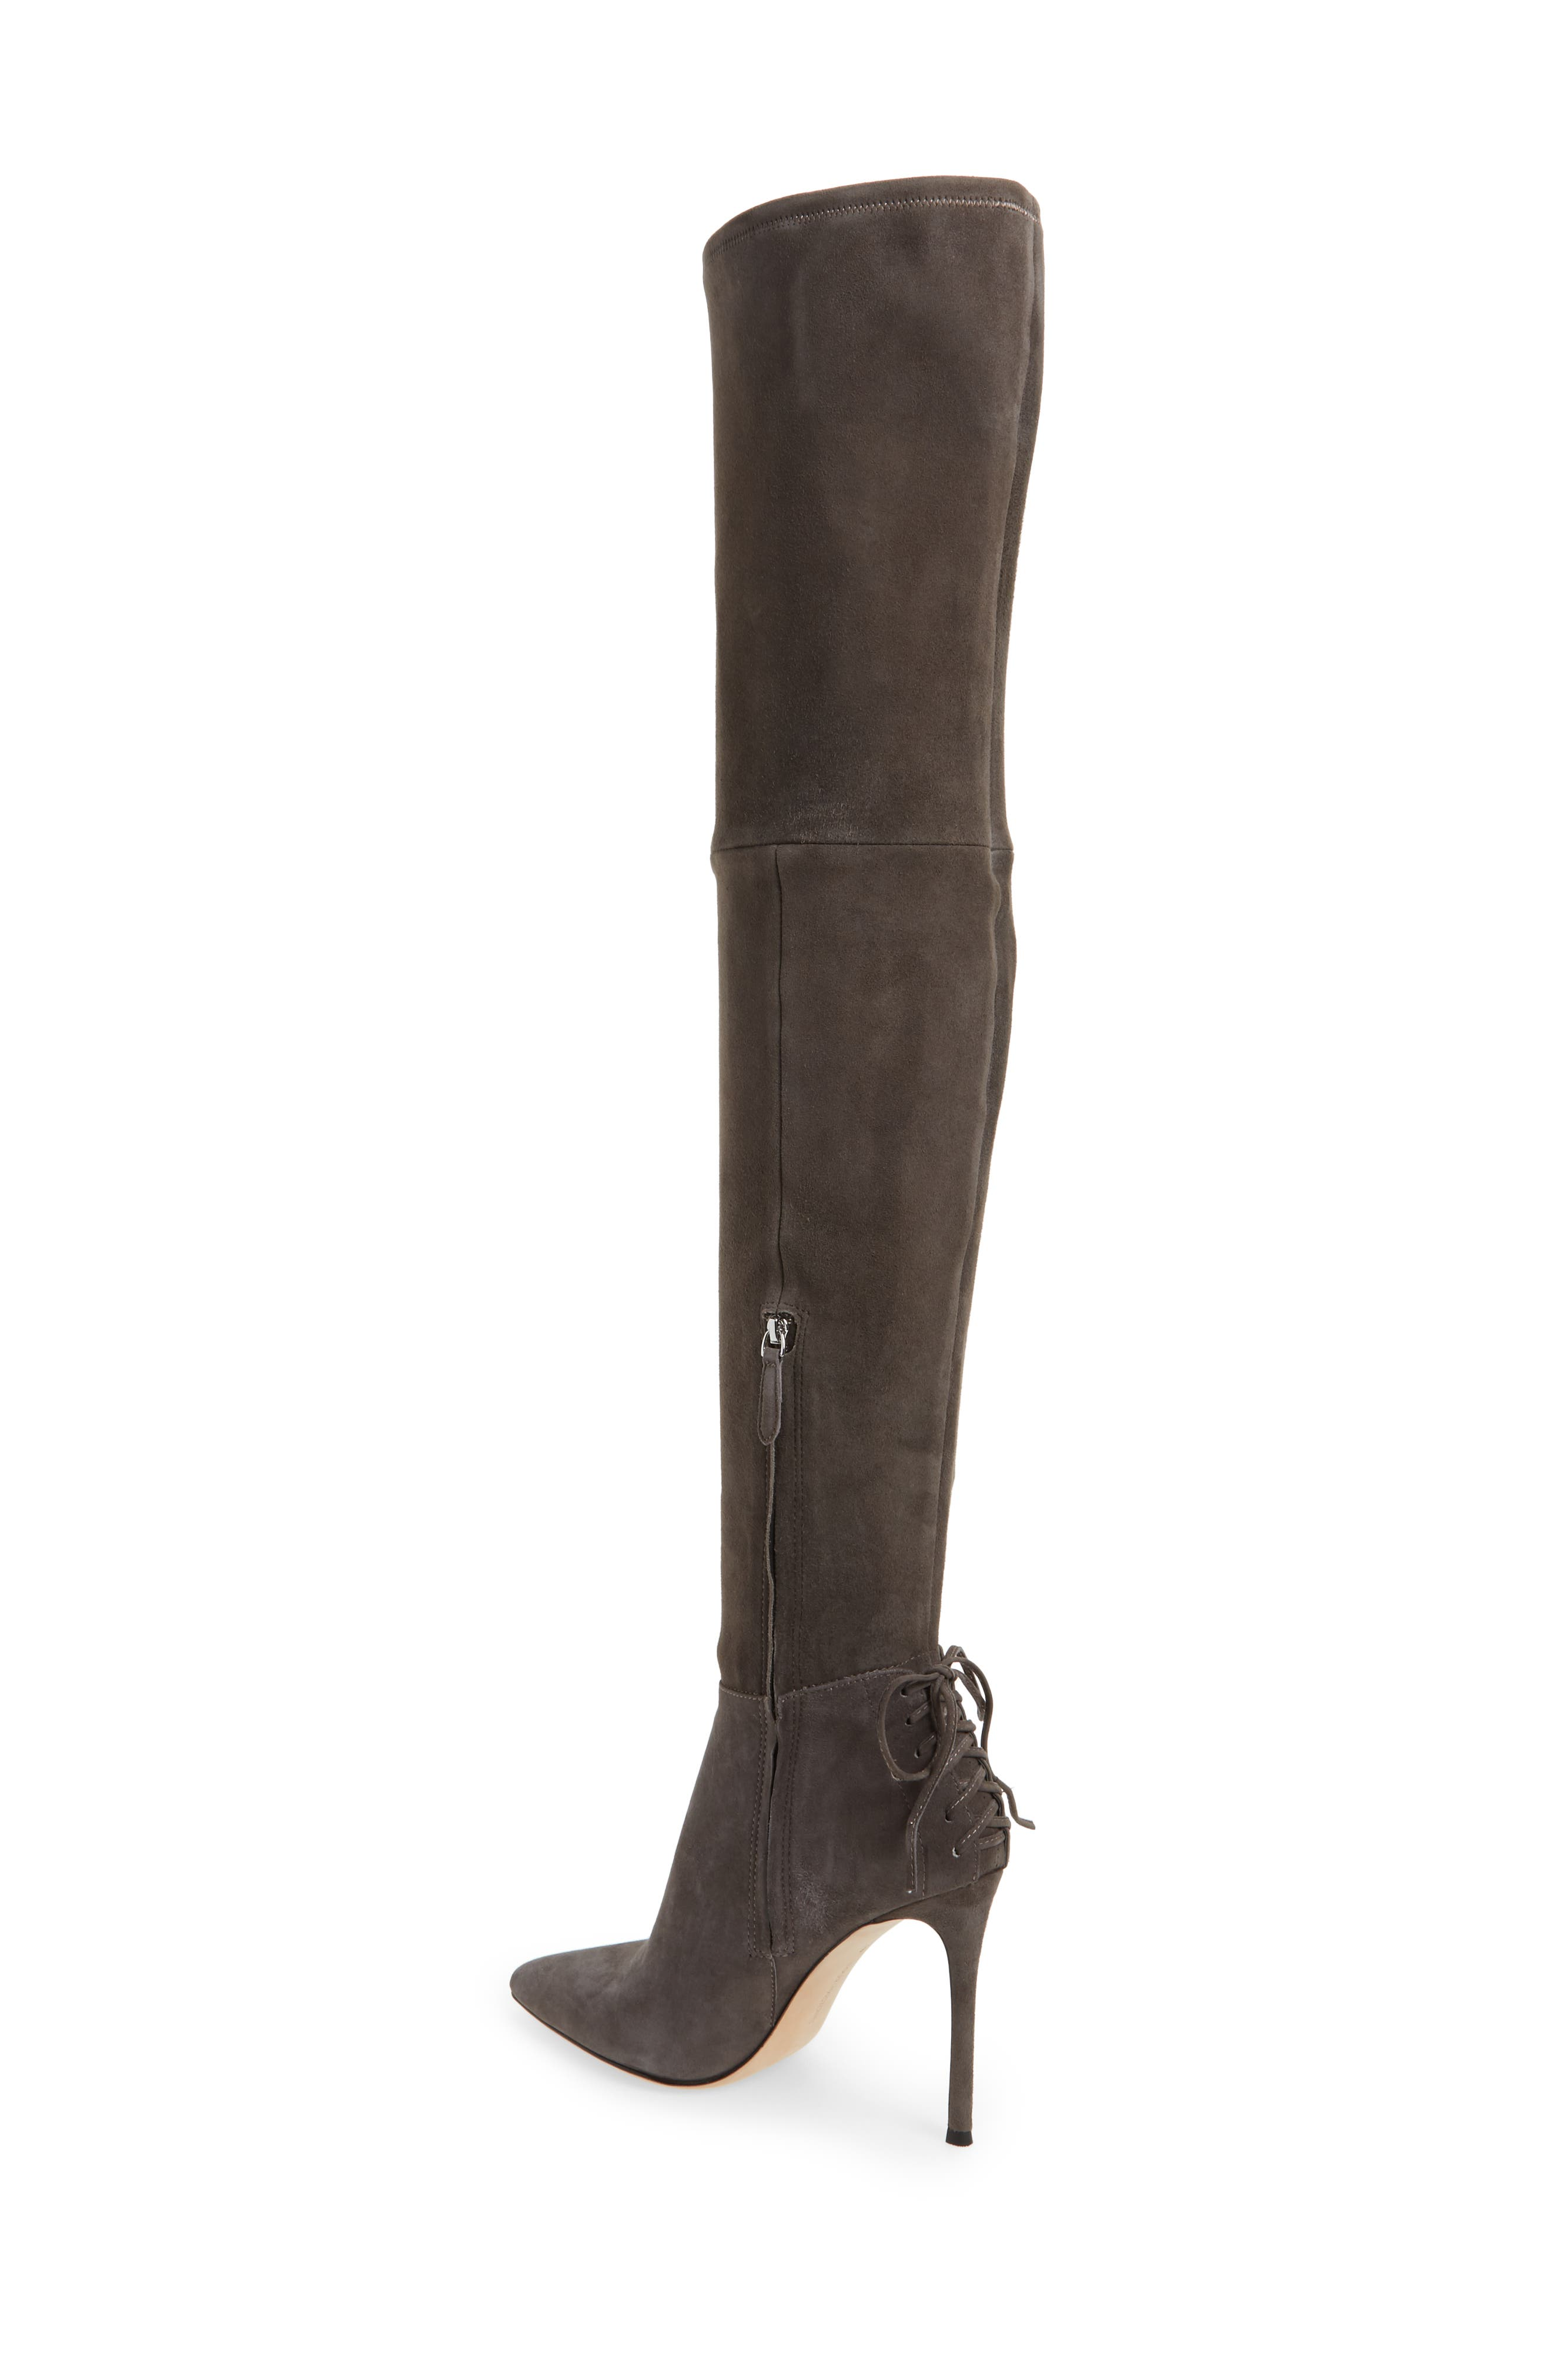 Alternate Image 2  - Pour la Victoire 'Caterina' Over the Knee Boot (Women)